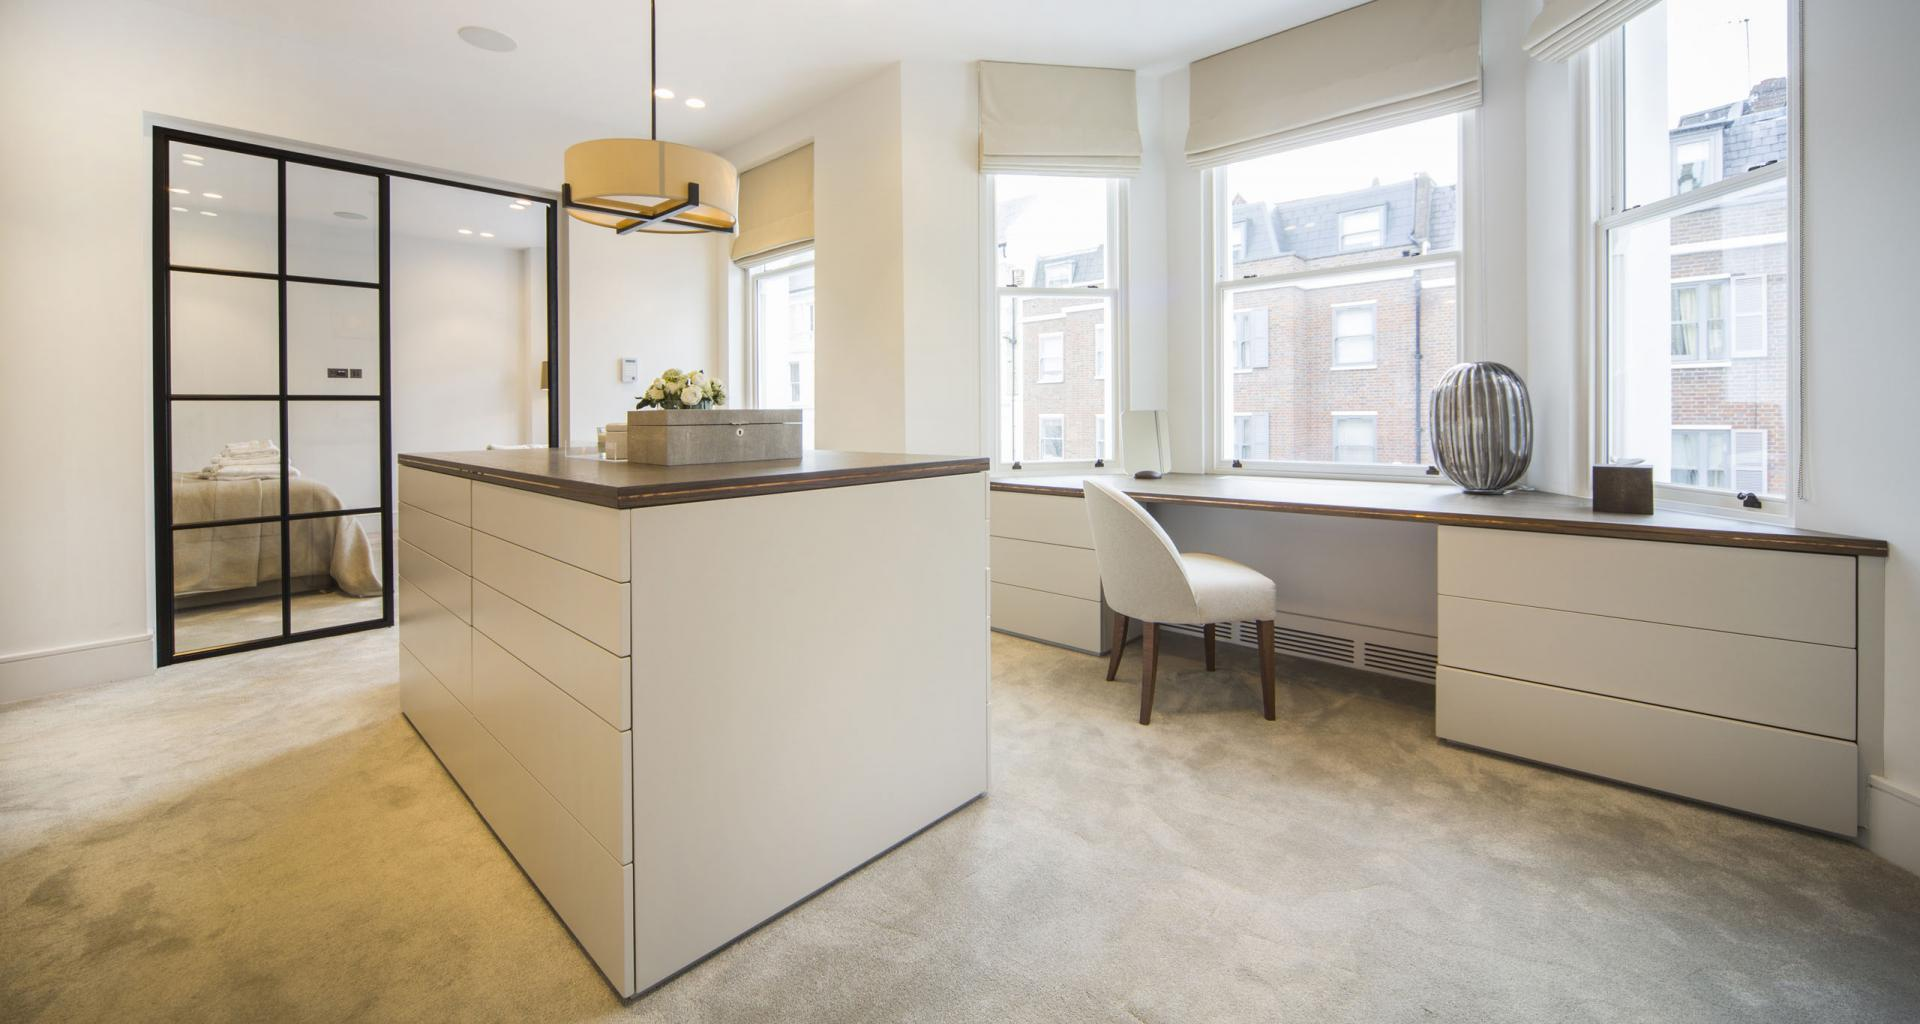 Dressing room at 21 Campden Hill Garden House, Notting Hill, London - Citybase Apartments